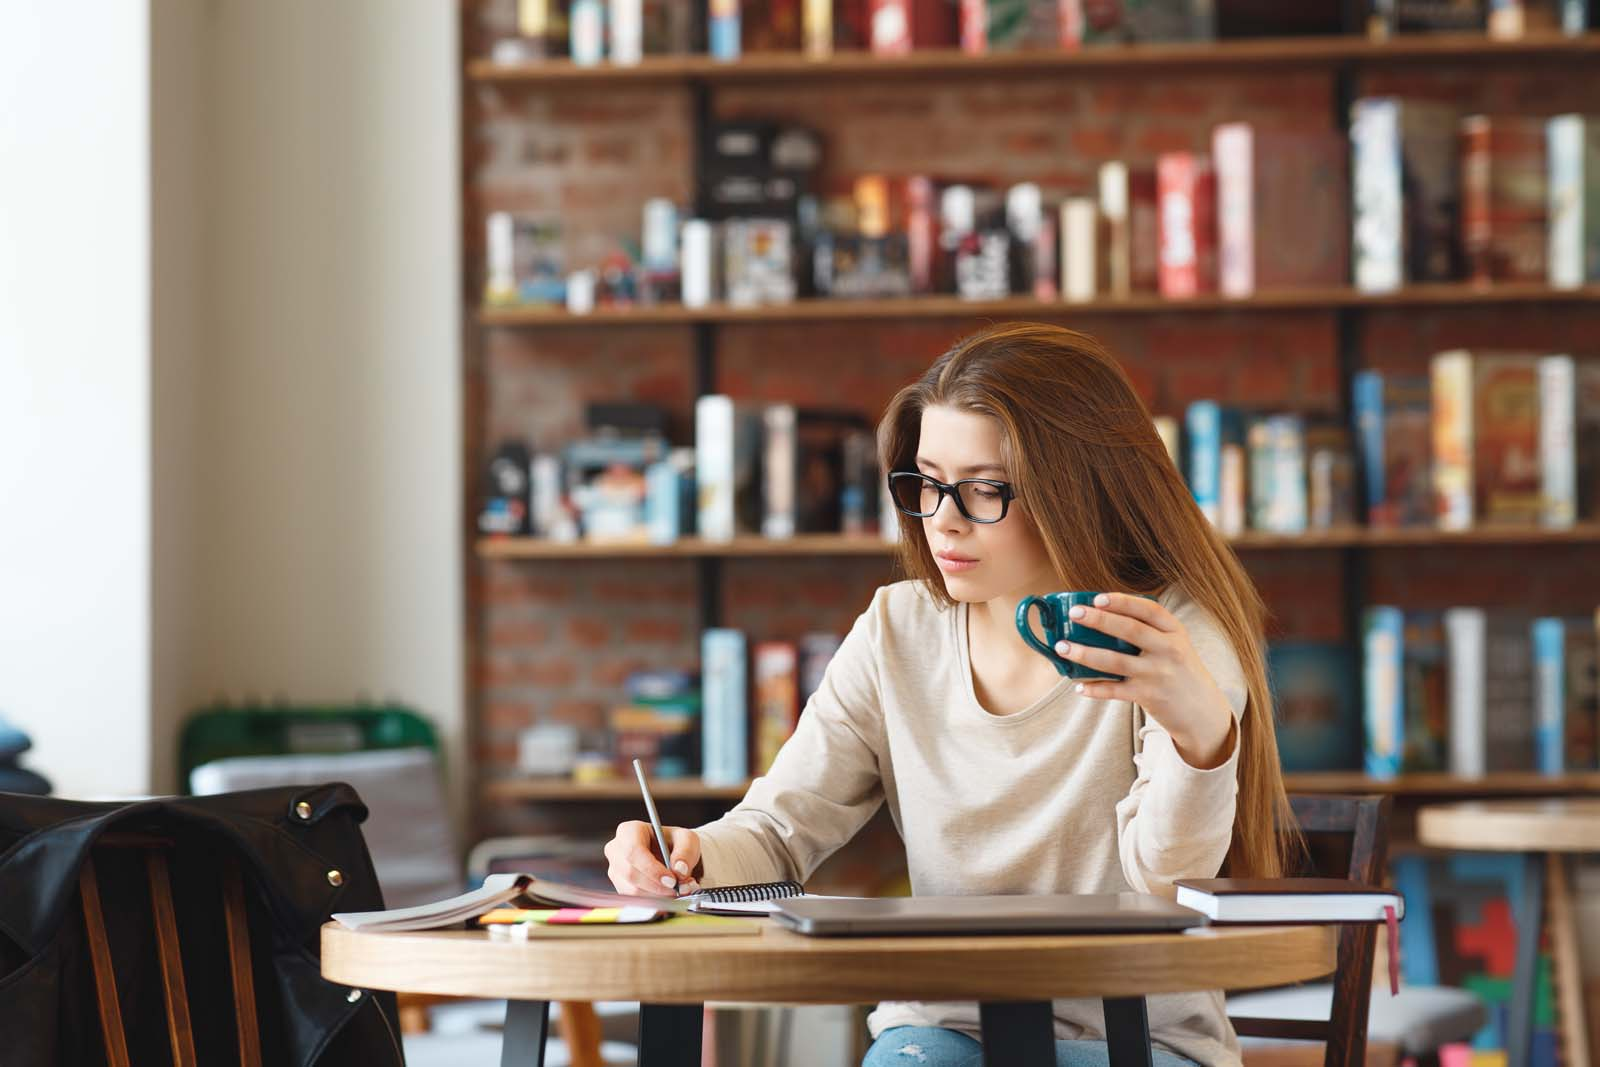 freelance woman drinking coffee and working